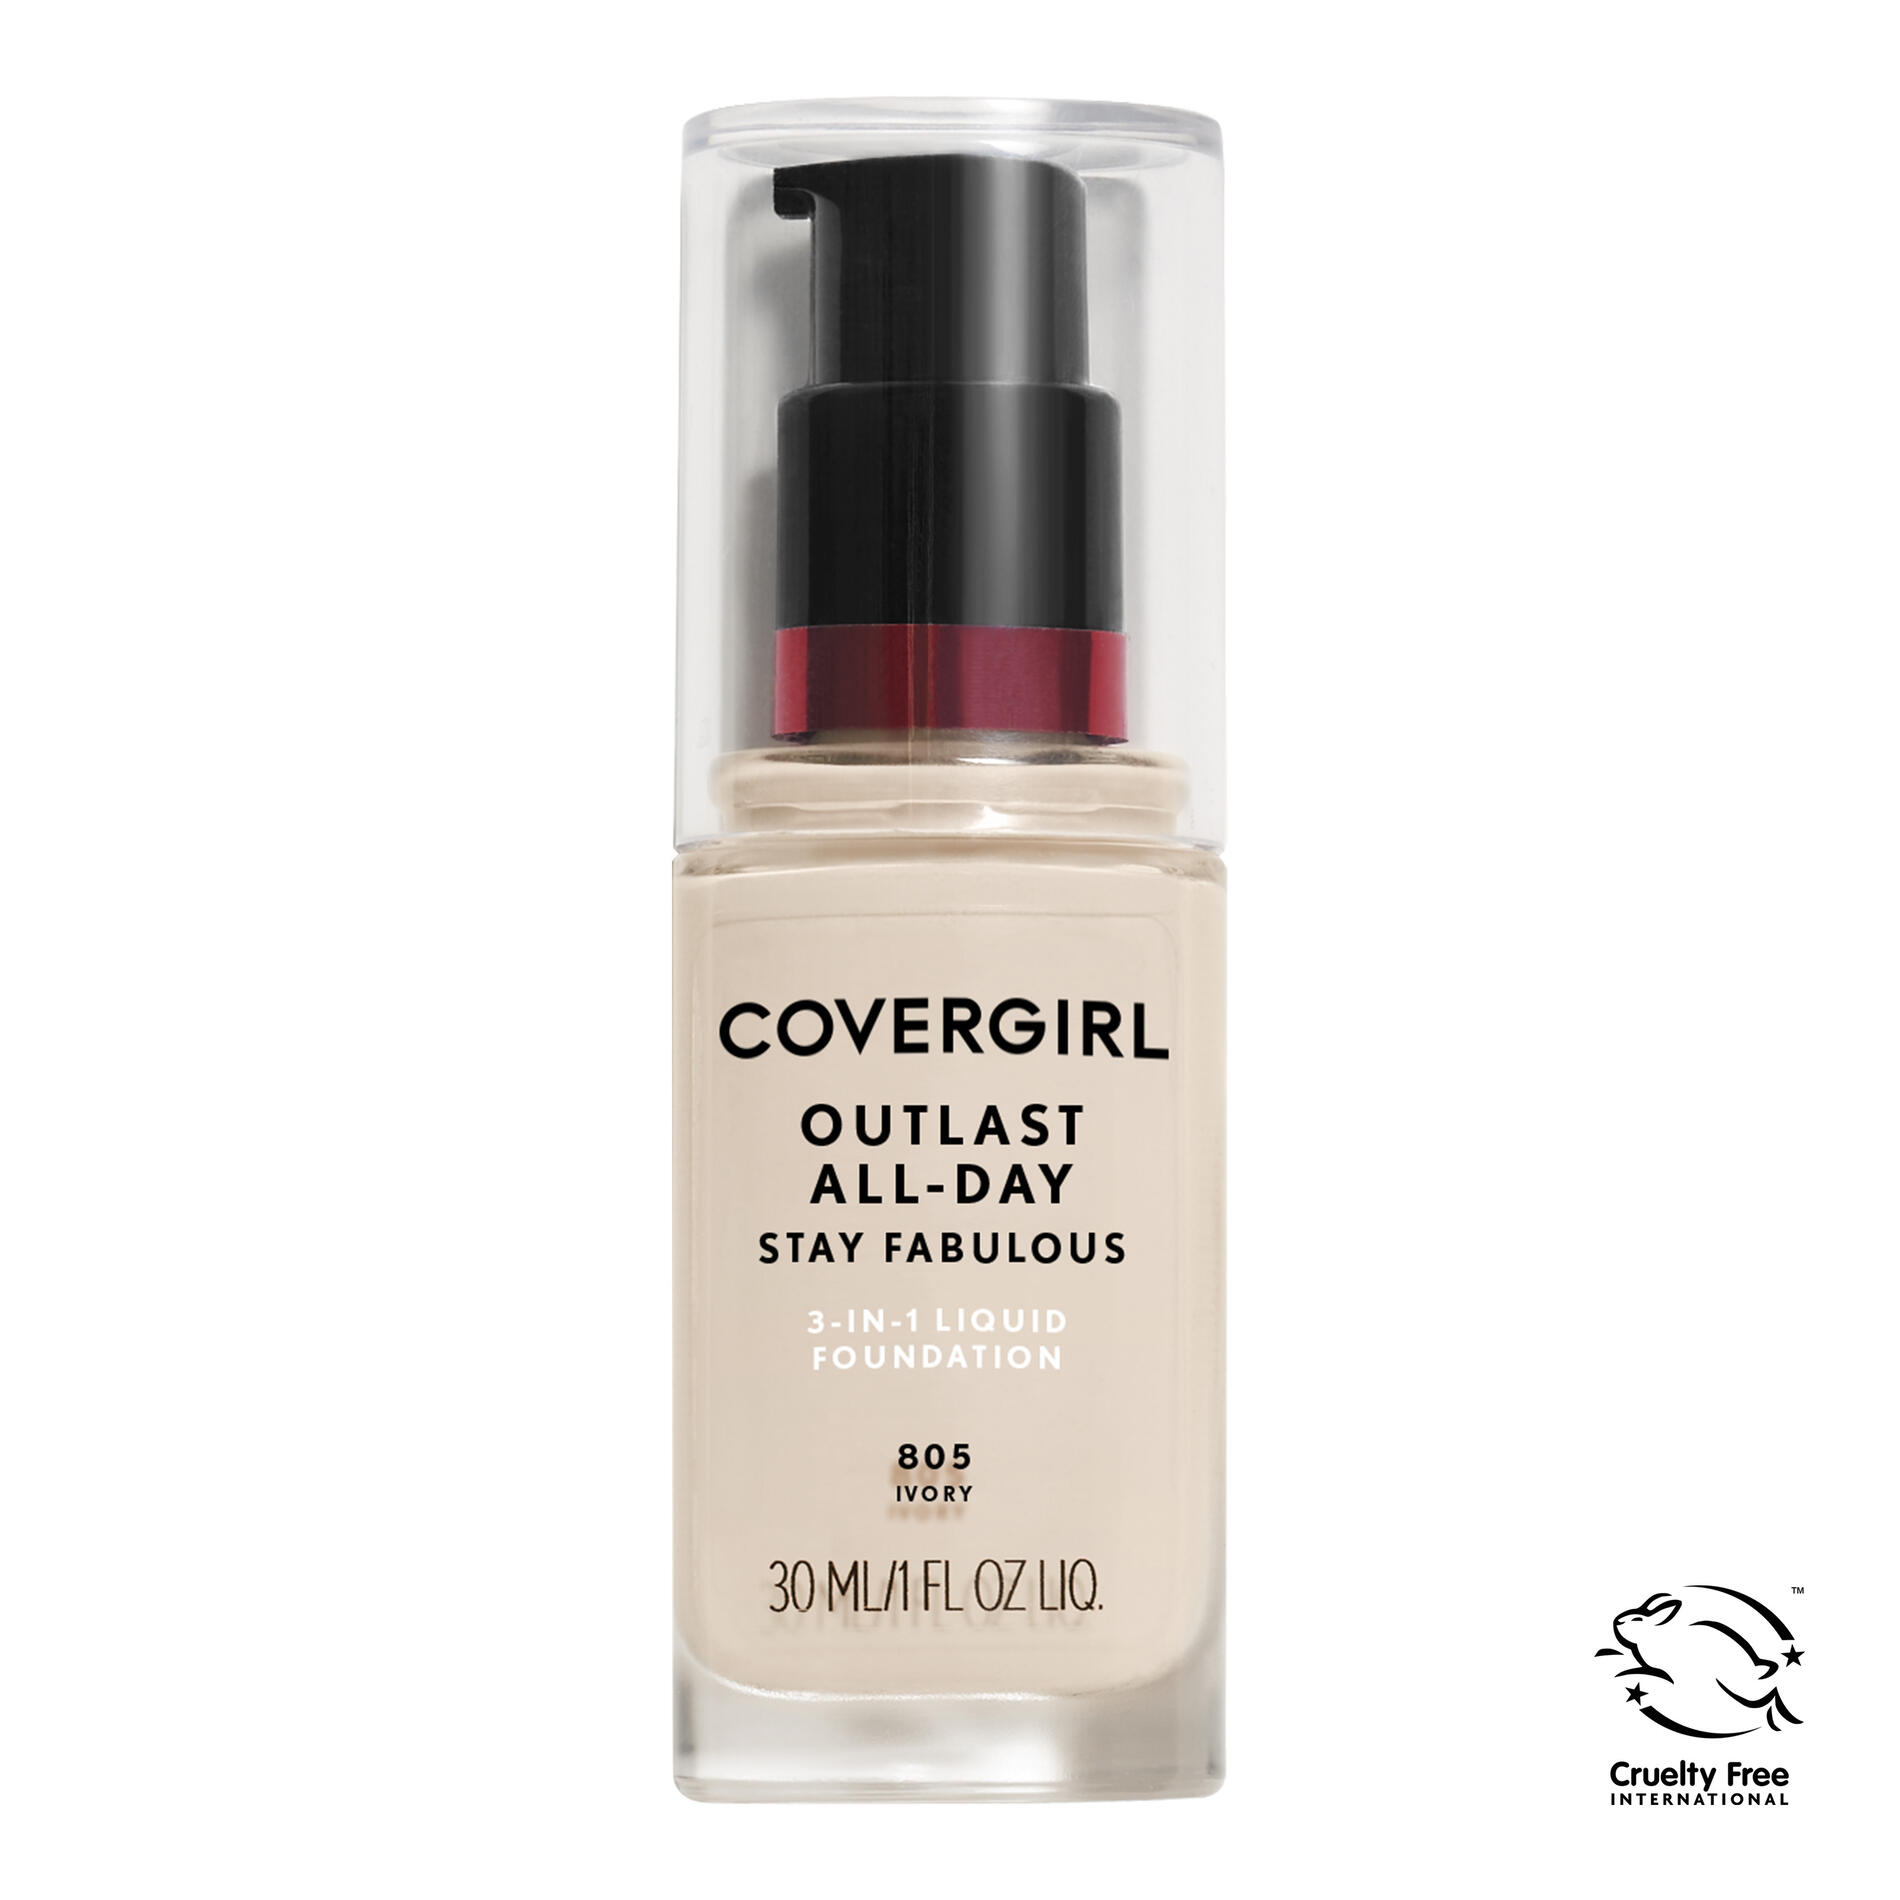 CoverGirl Outlast All-Day Stay Fabulous 3-in-1 Liquid